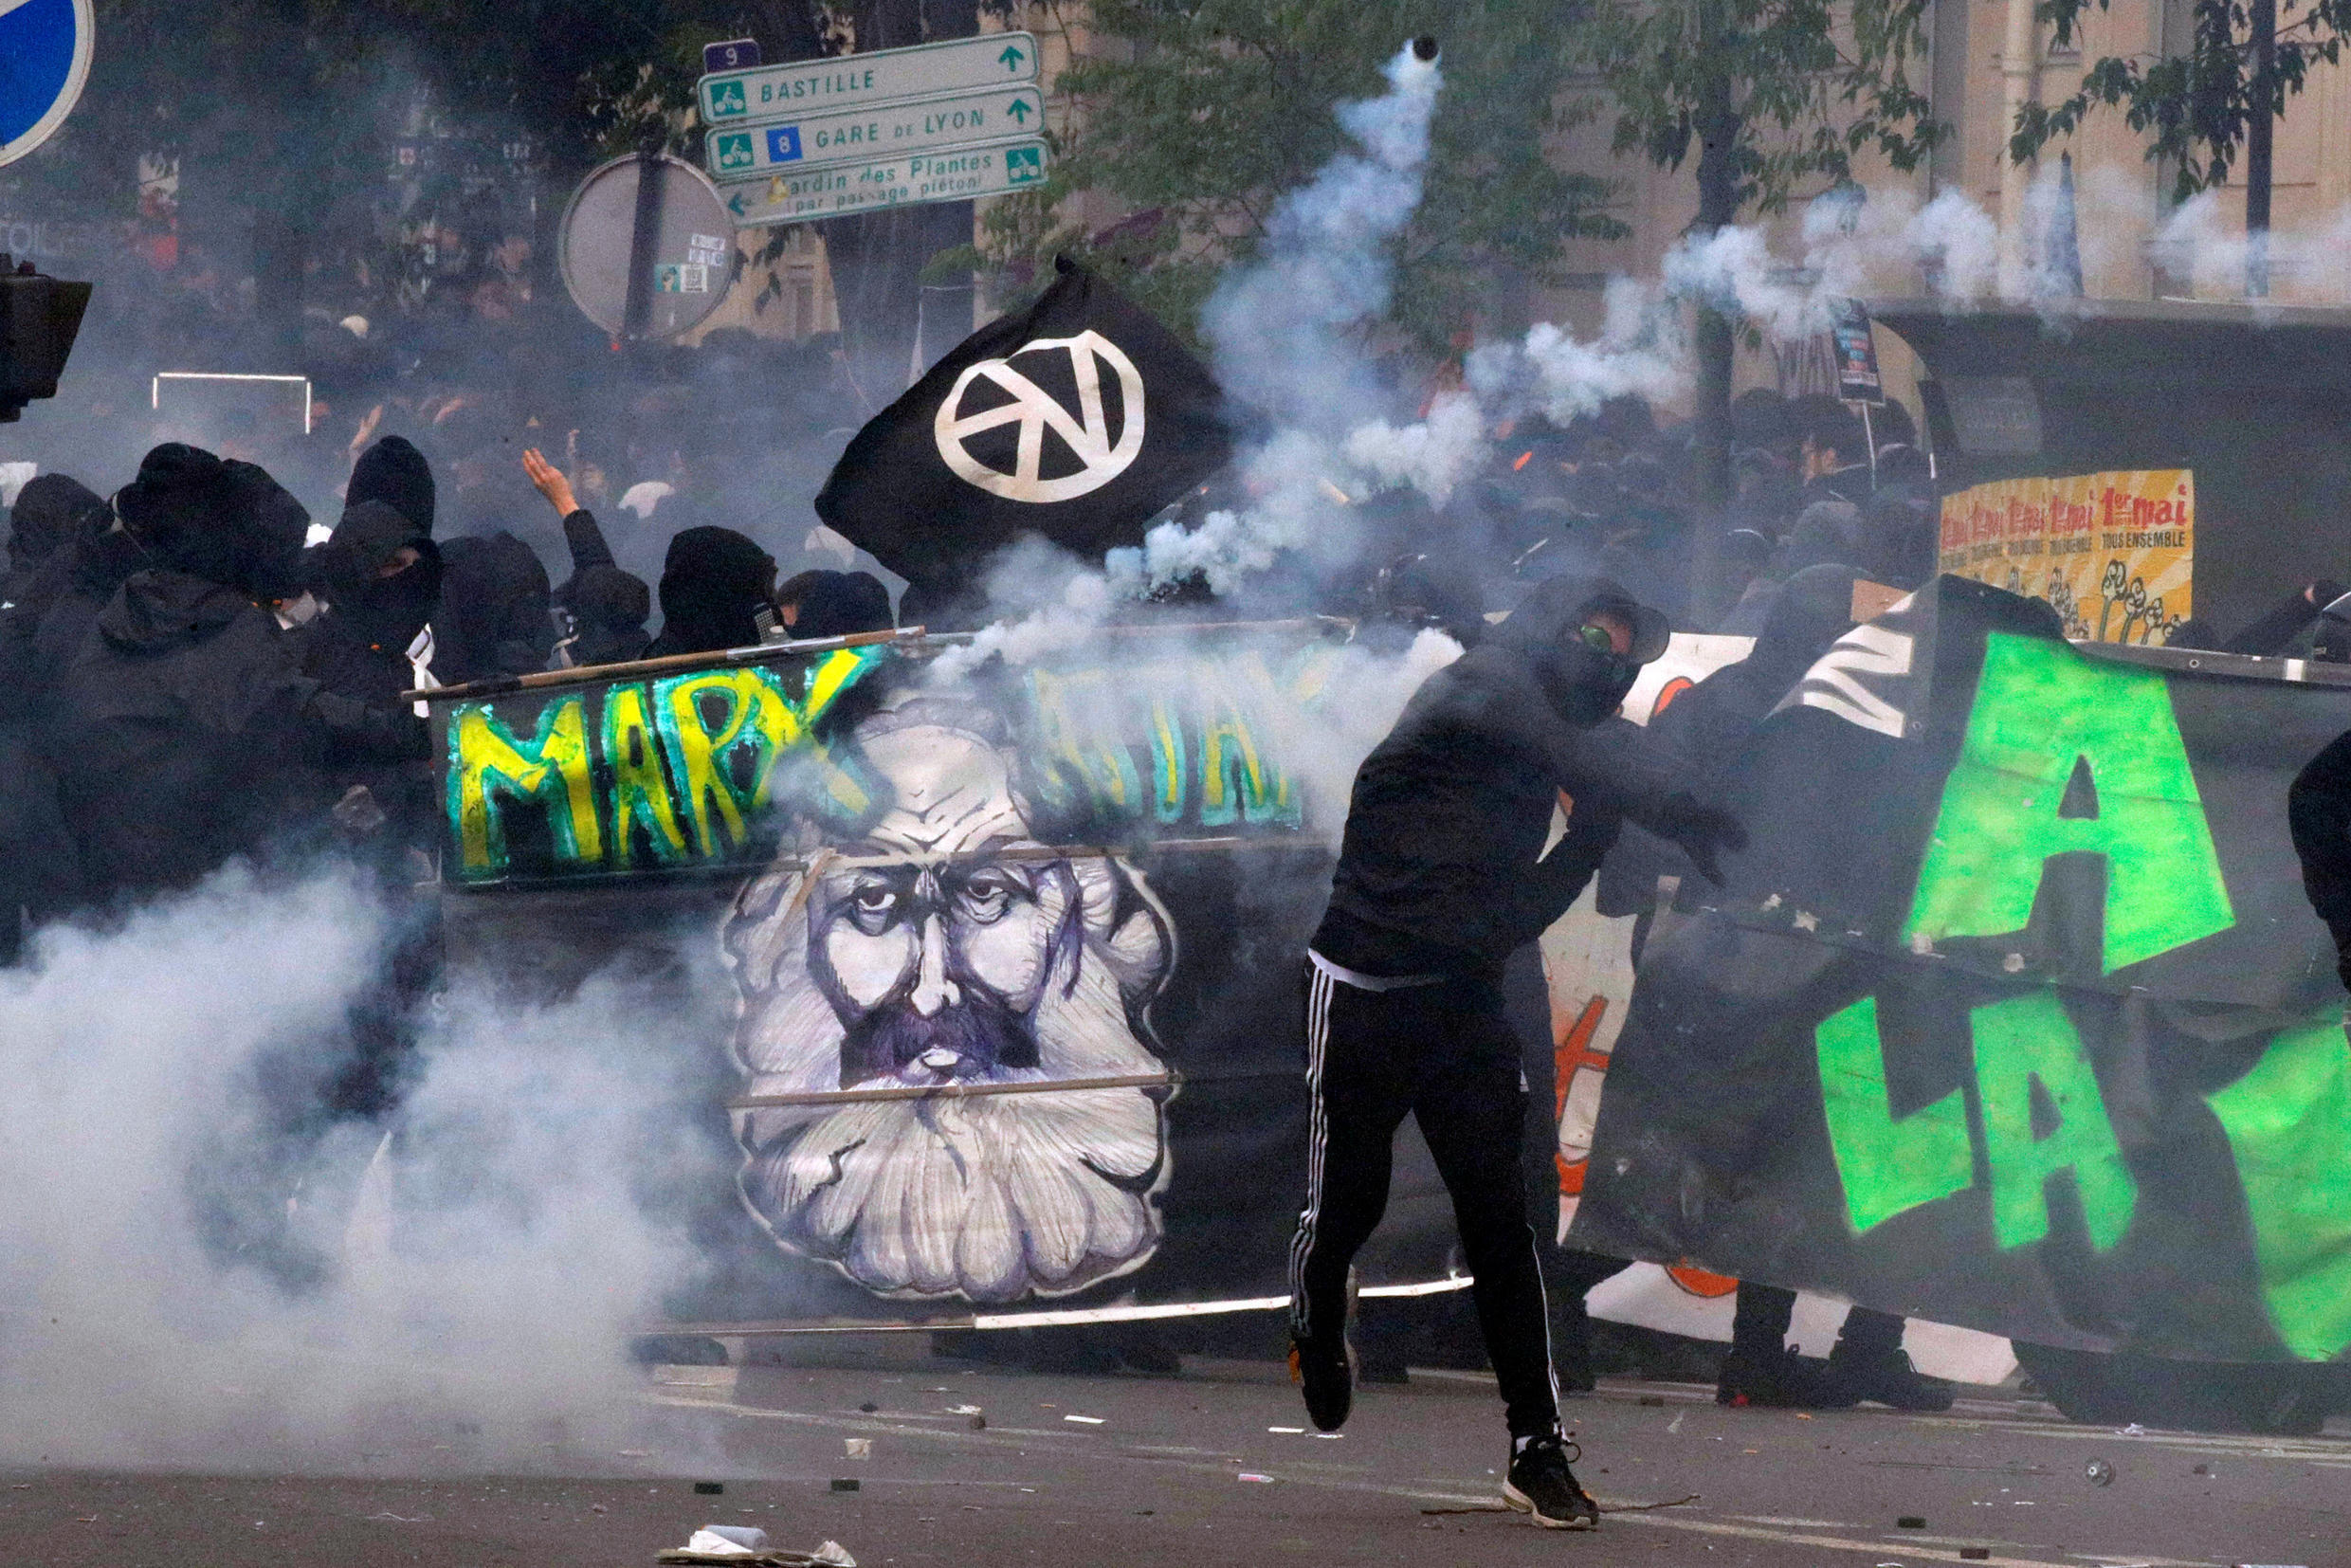 A demonstrator confronts police on the Paris May Day demonstration